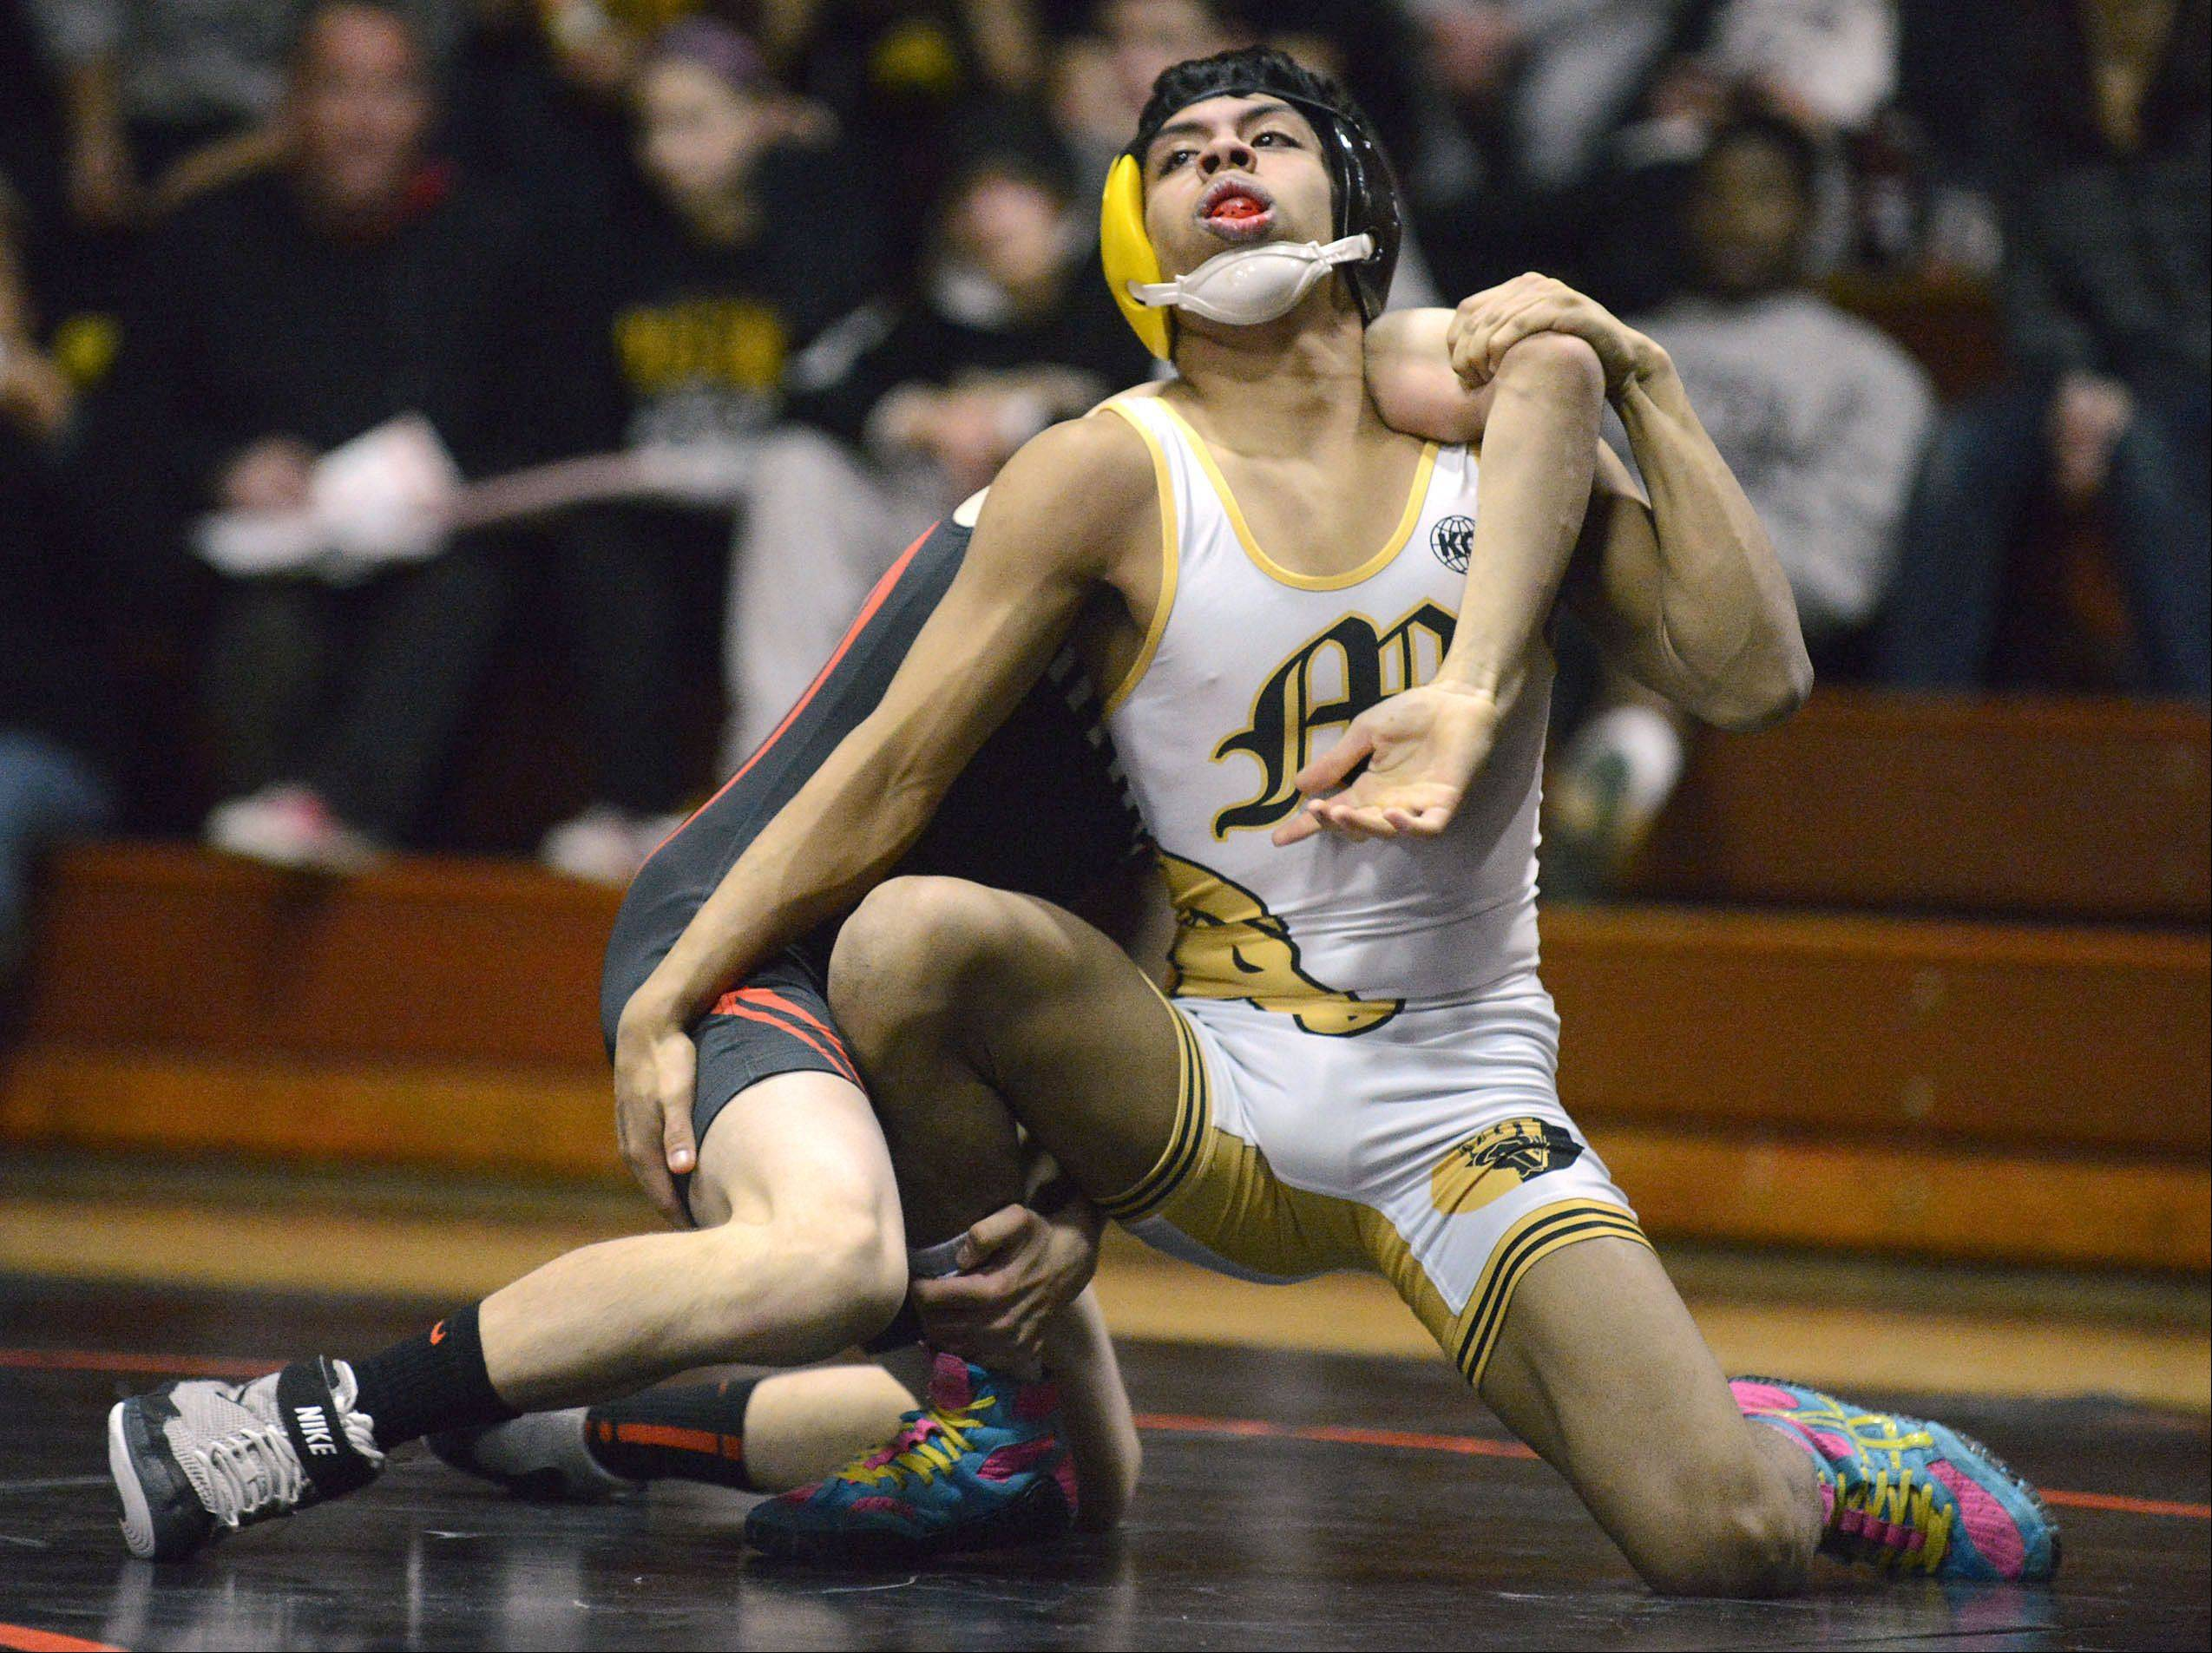 St. Charles East's Anthony Rubino takes the win in the 113 pound match vs. Metea Valley's Axl Ariza on Thursday, December 19.